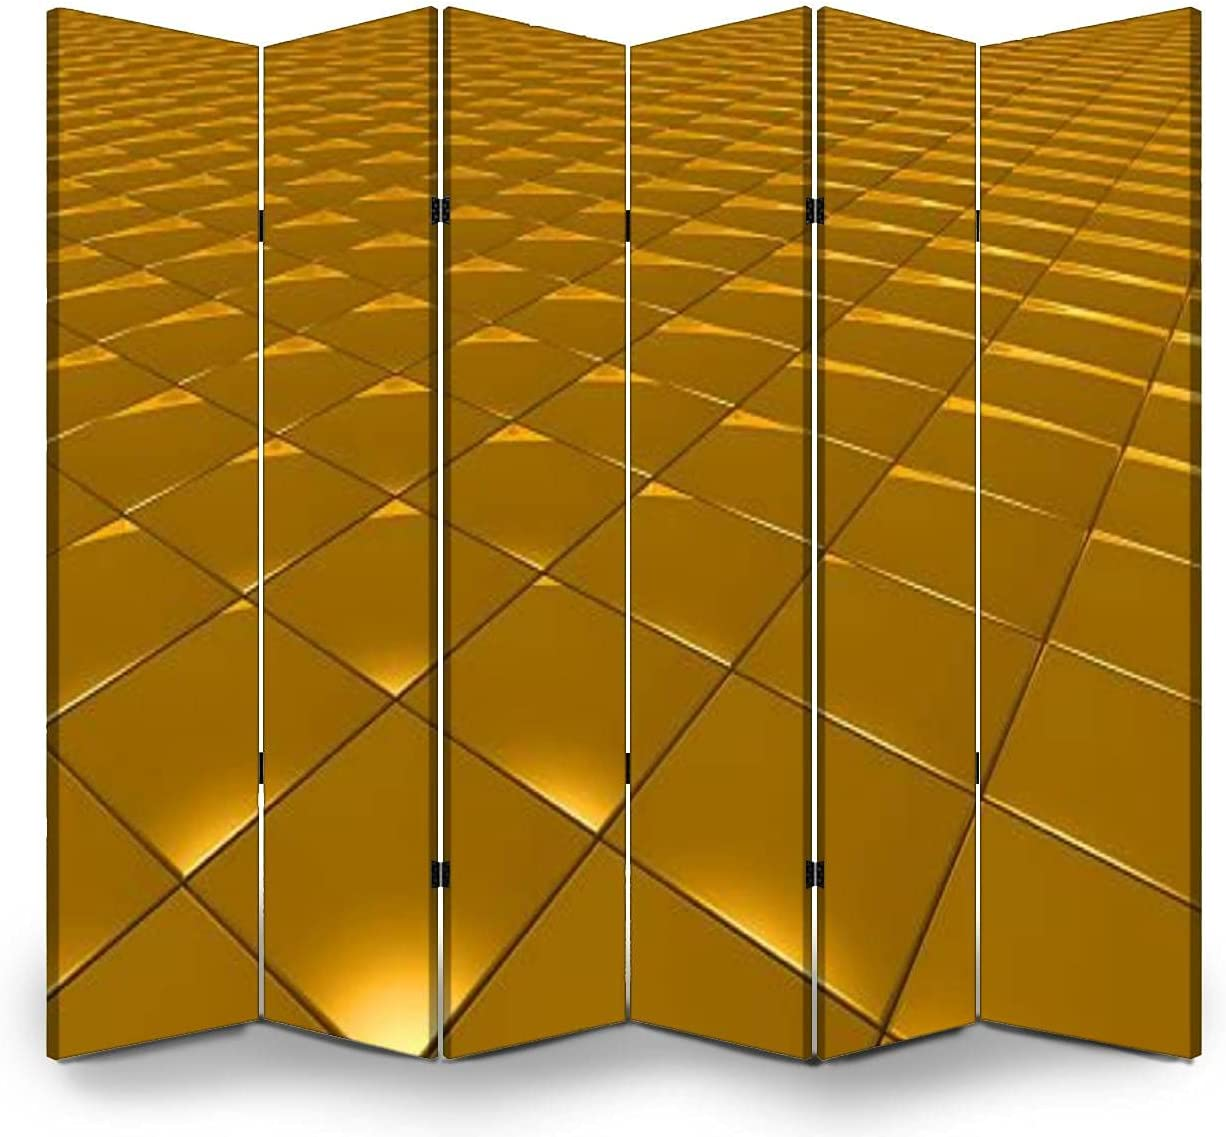 55% OFF New Shipping Free Shipping 6 Panel Wall Divider 3D Abstract Square Pattern Gold Folding Can